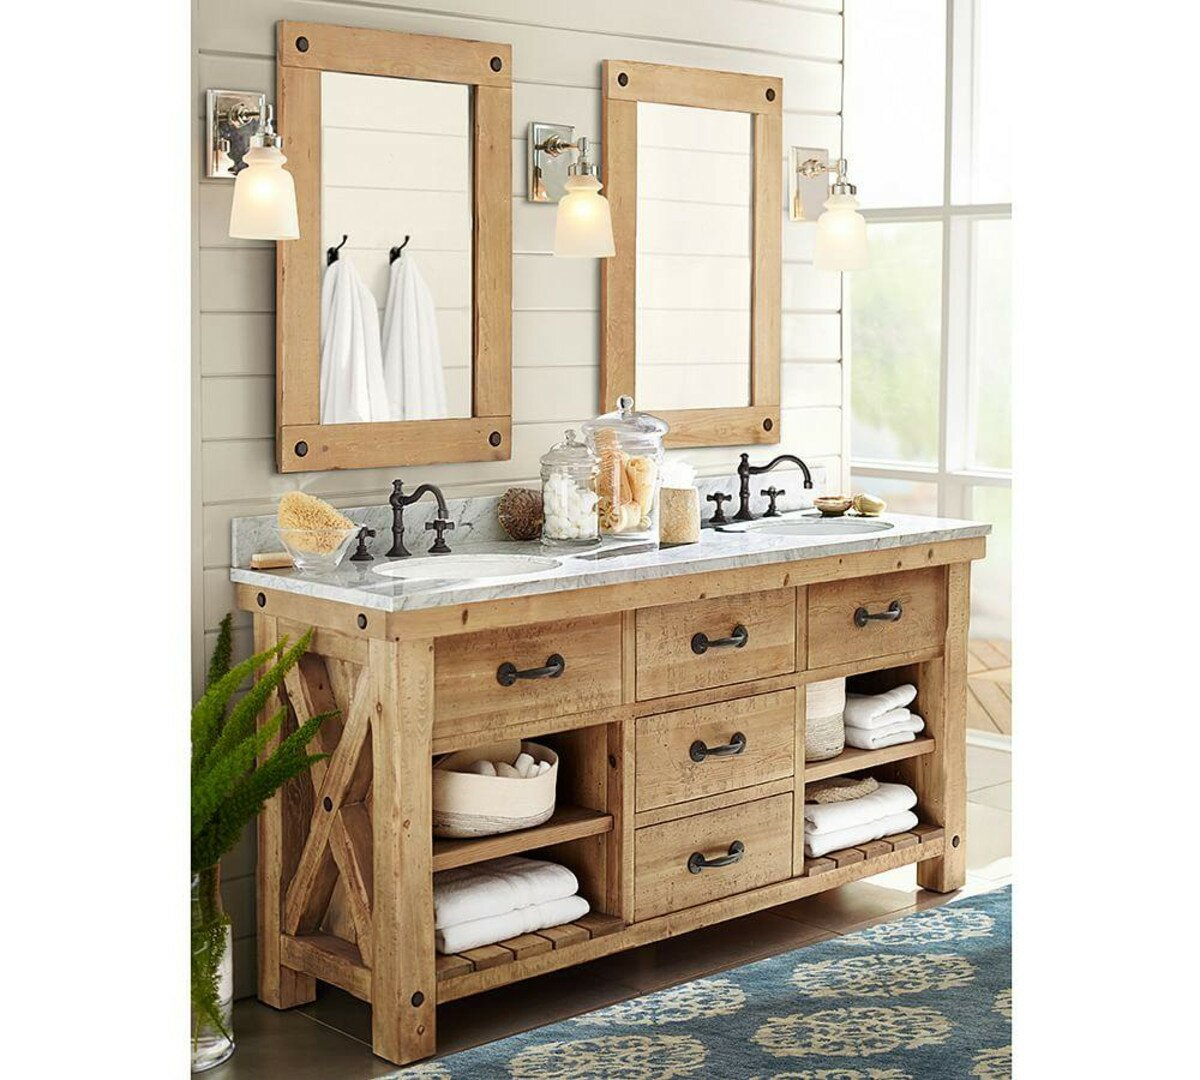 Pottery Barn Vanity for Bathroom Cabinet Design Ideas: Bathroom Vanities With Sinks | Pottery Barn Vanity | Bathrrom Vanity